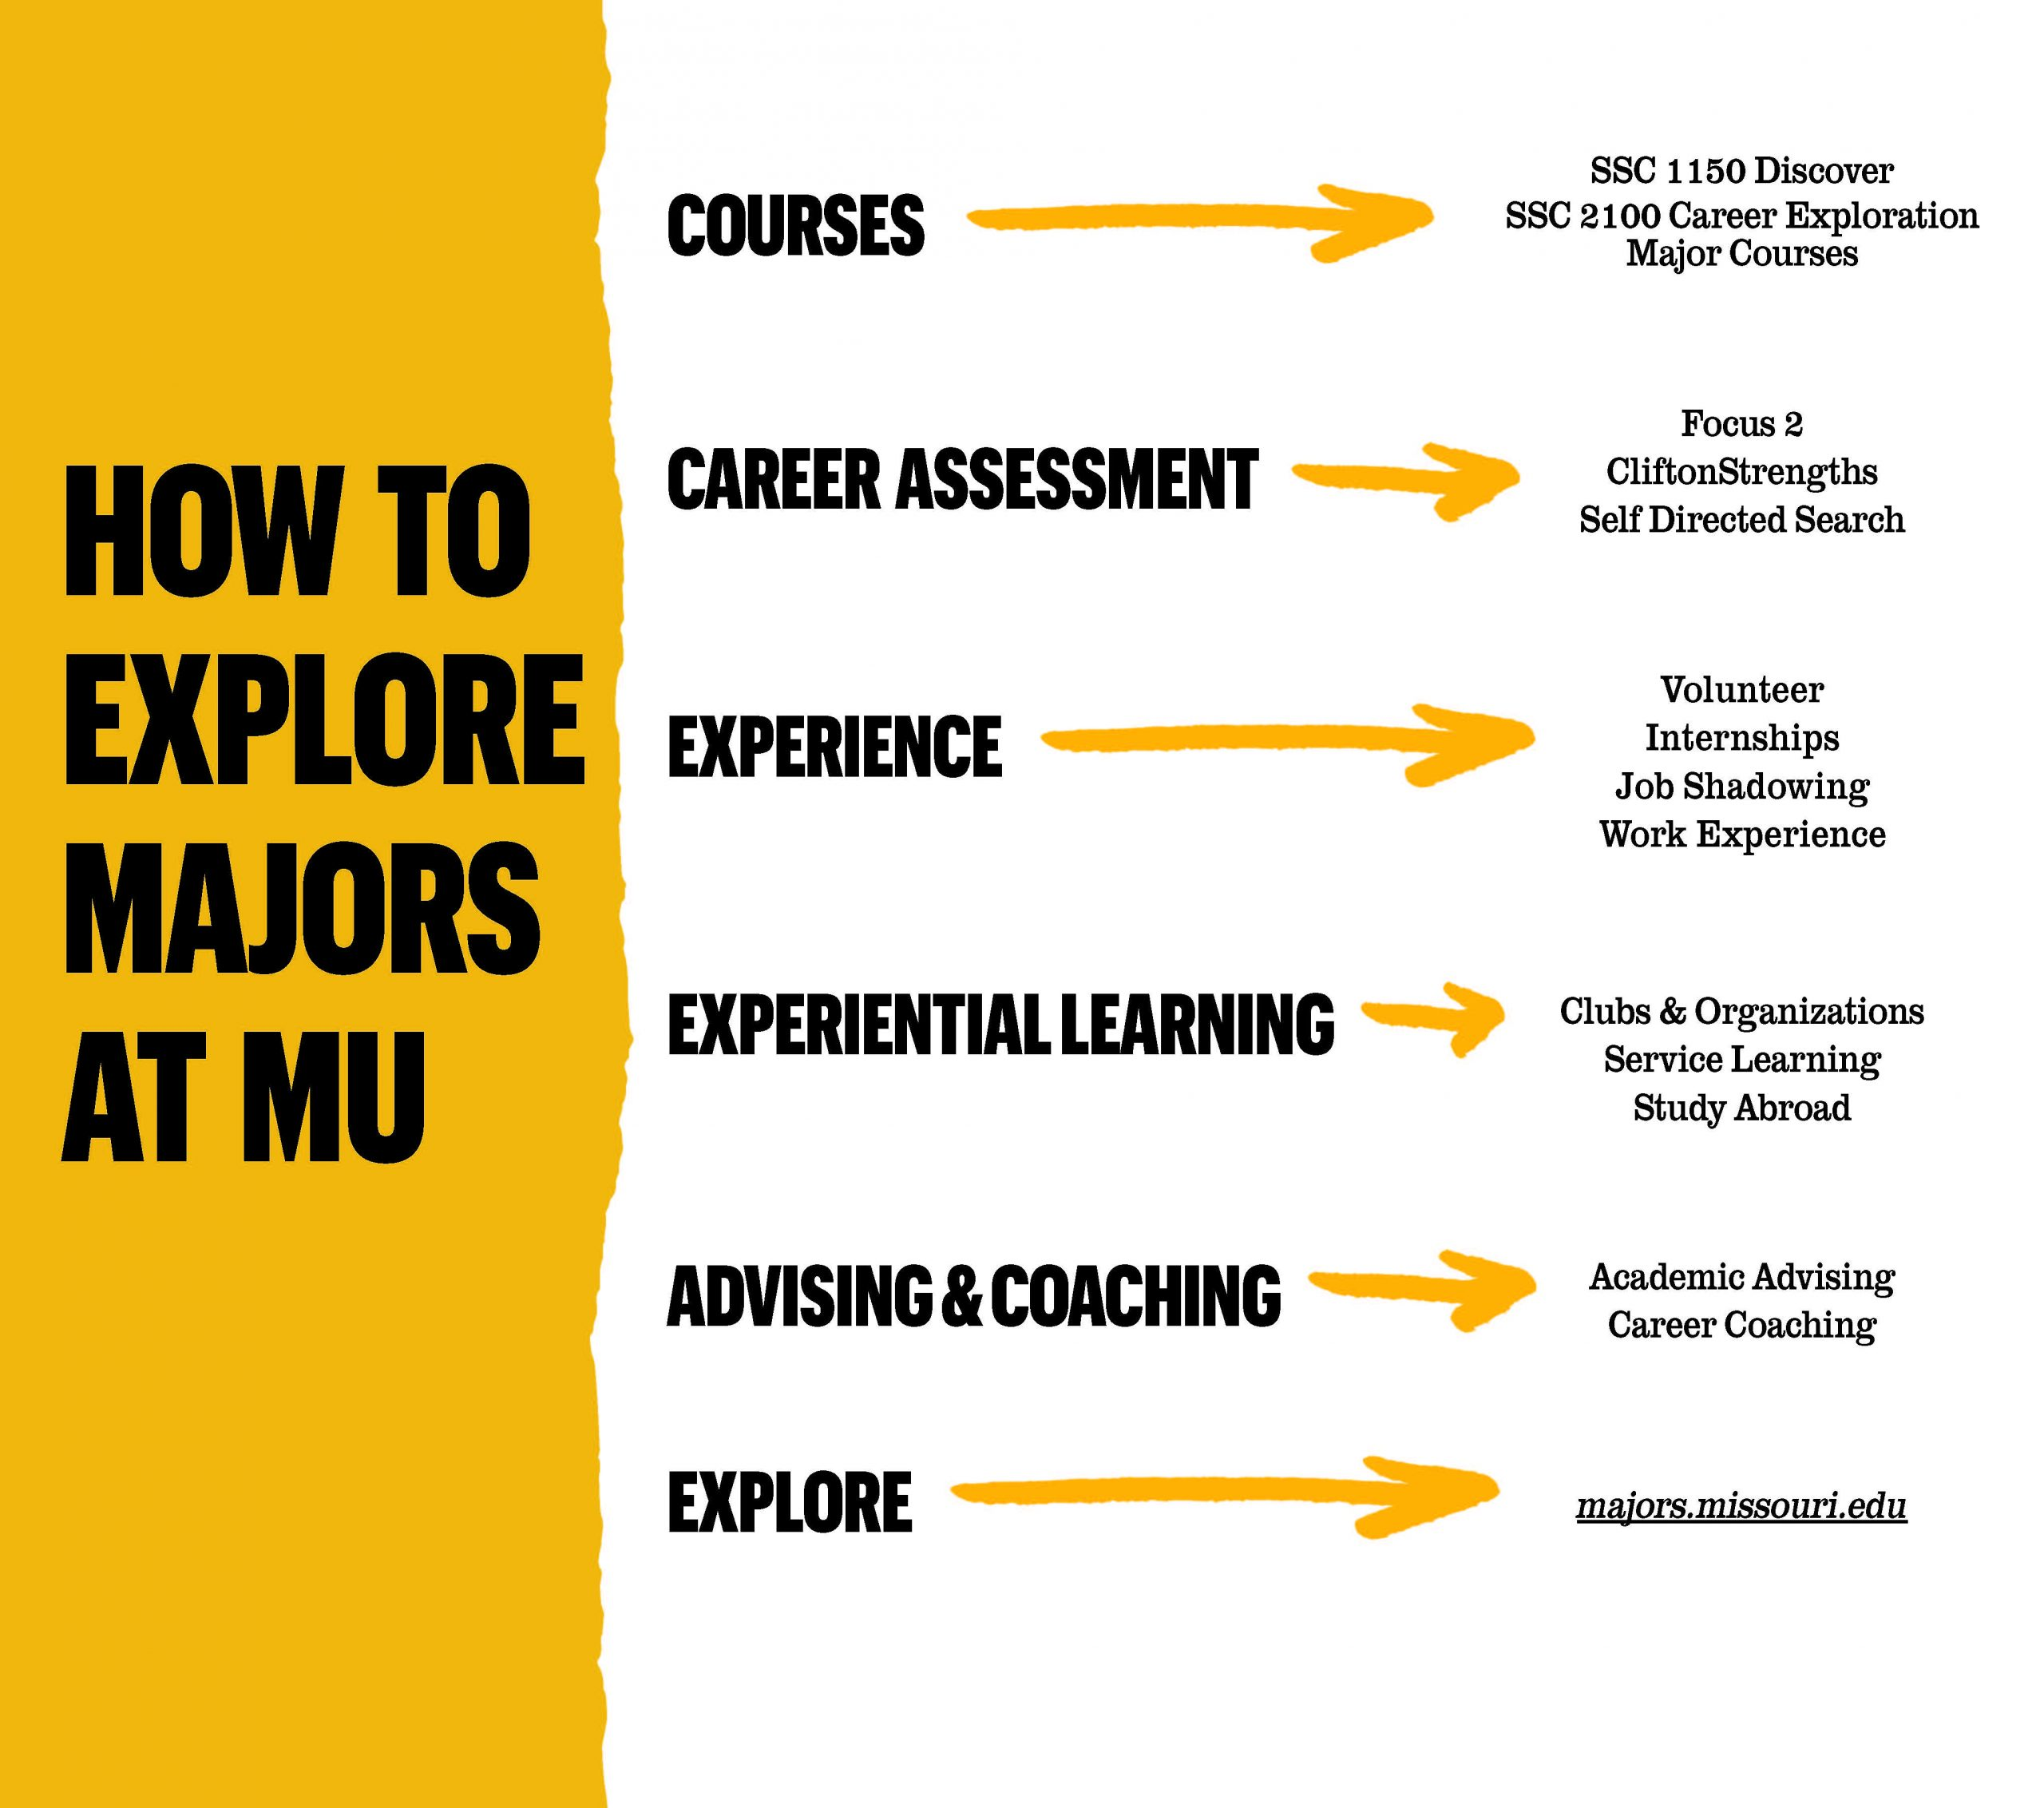 How to explore majors at MU